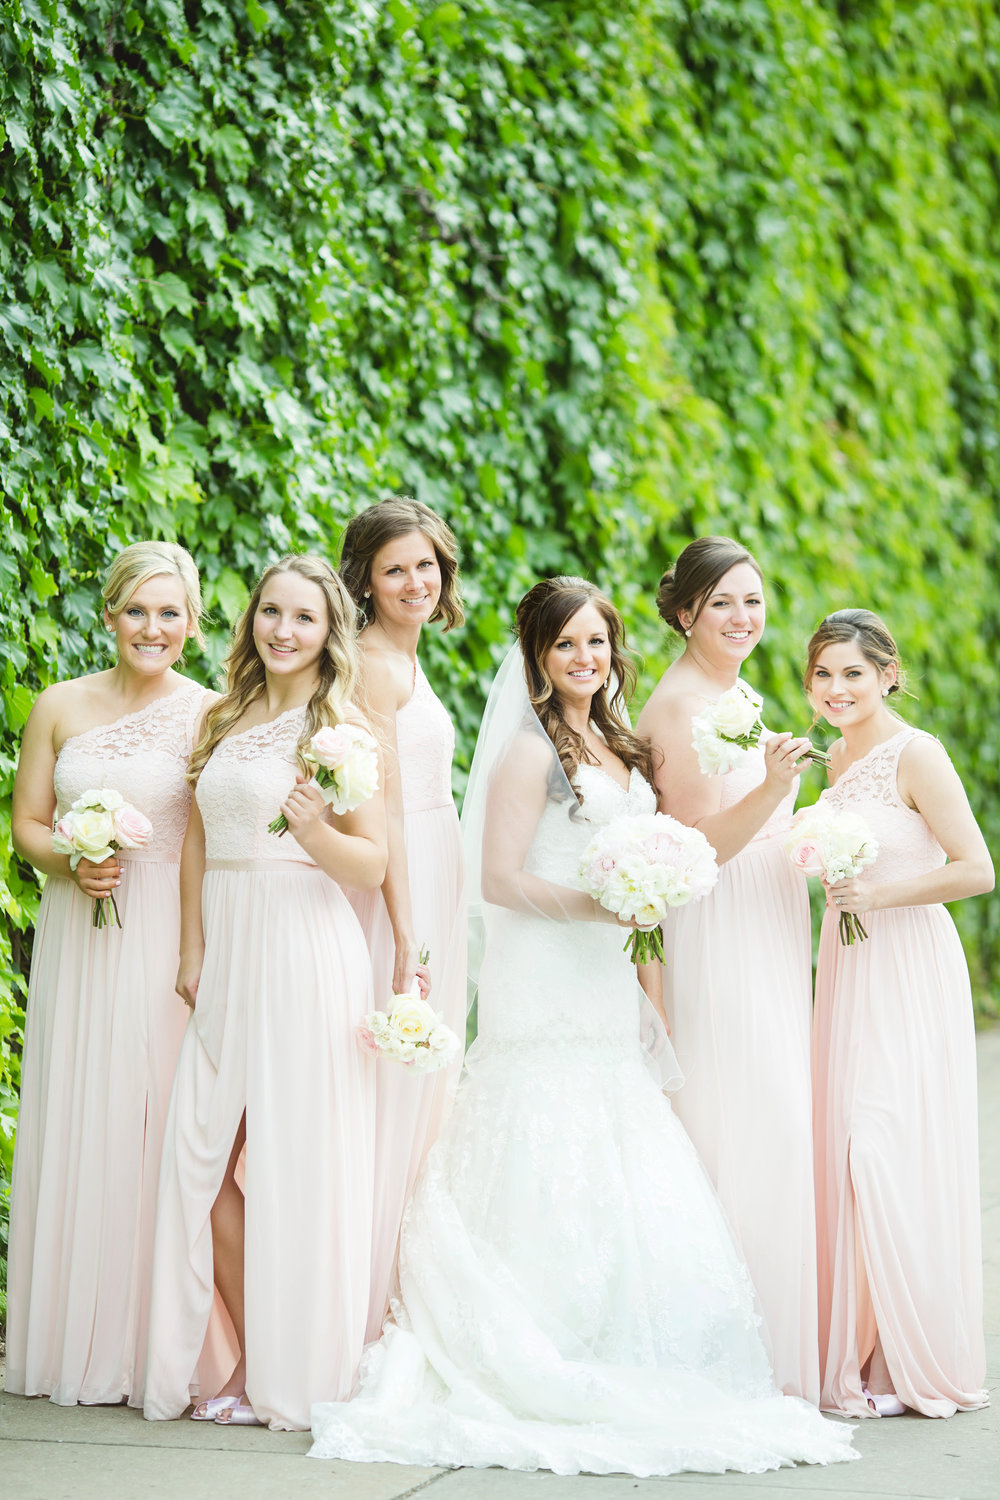 Rachel And Nick: Spring Wedding at The Venue, Leawood Kansas by Claire Ryser of Visionaire Studios.